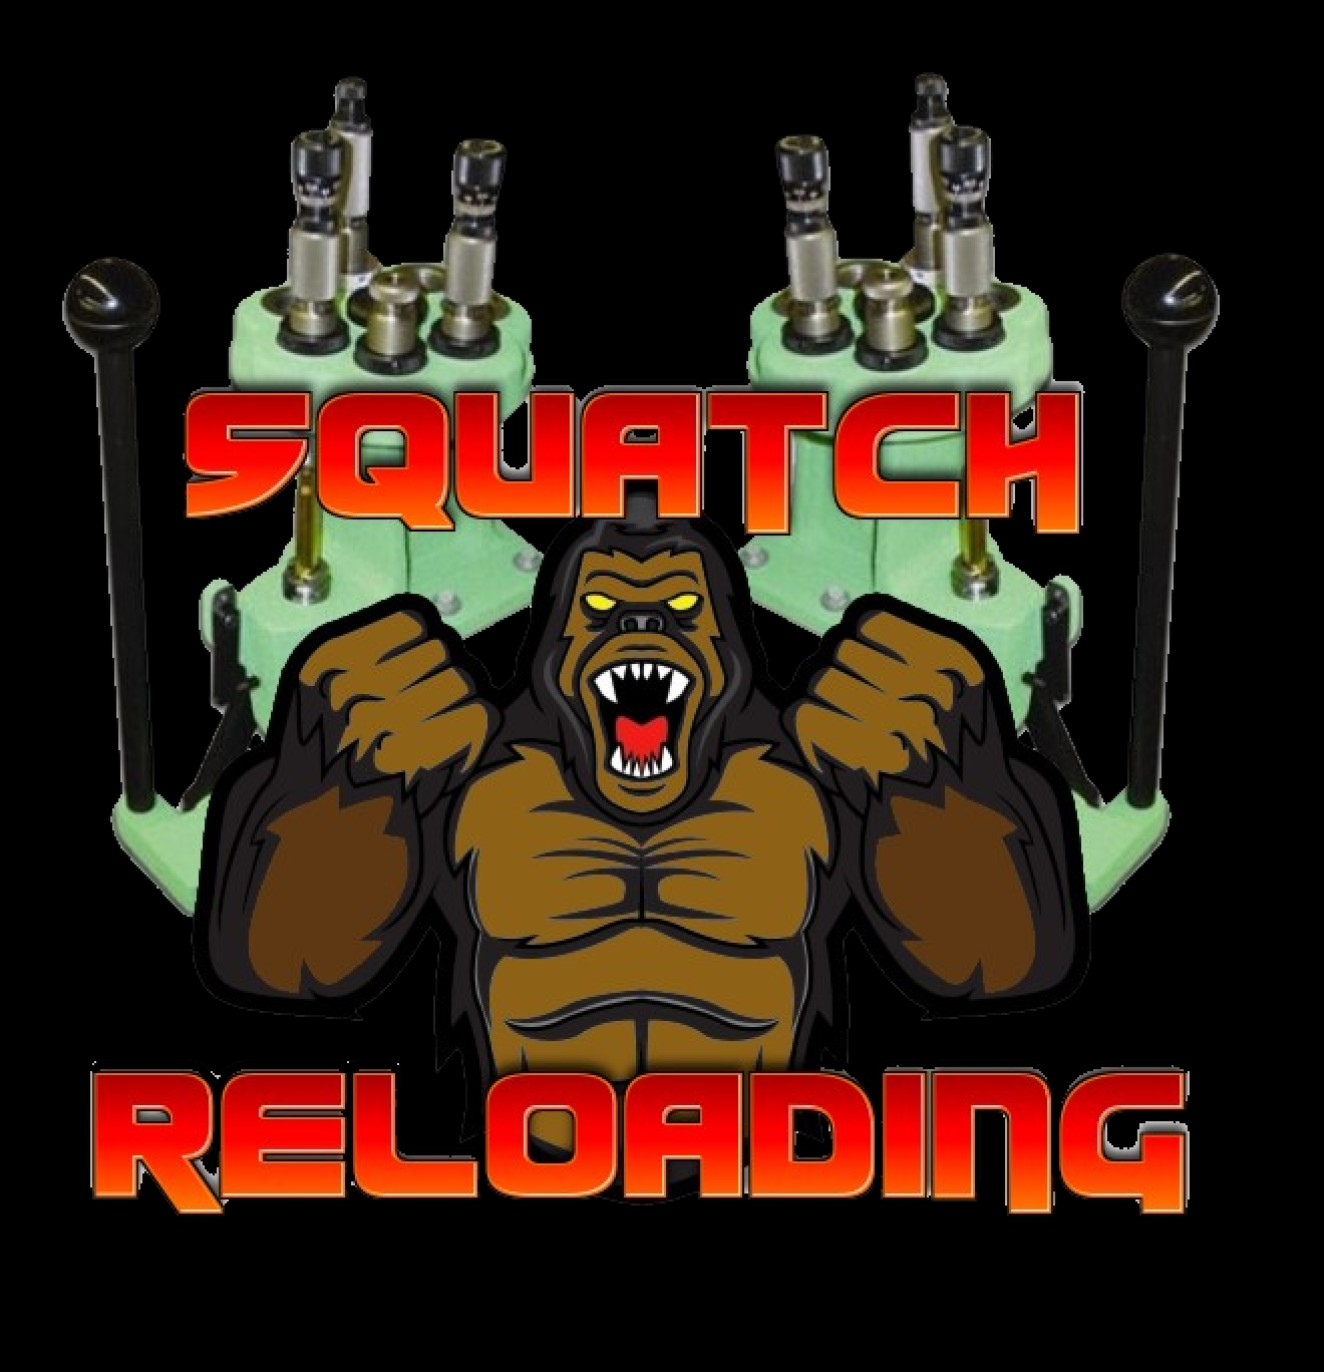 9mm Load Series - Final - Squatch Reloading 2